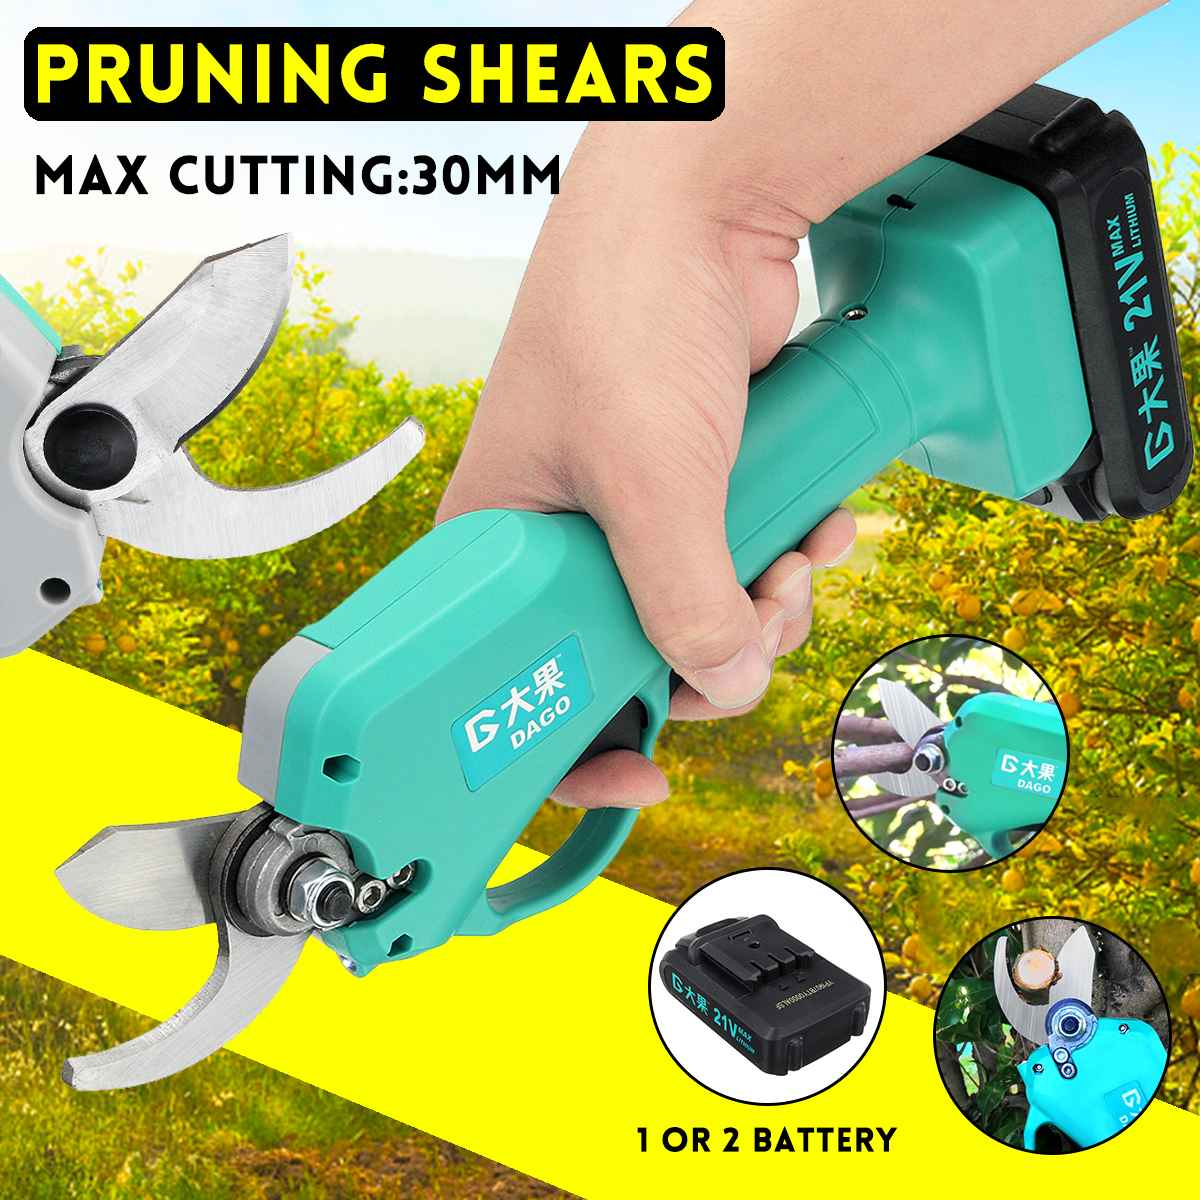 21V Wireless and Rechargeable Electric Garden Scissors for Pruning Branches with 30mm Maximum Cutting and 2 Li-ion Battery 1